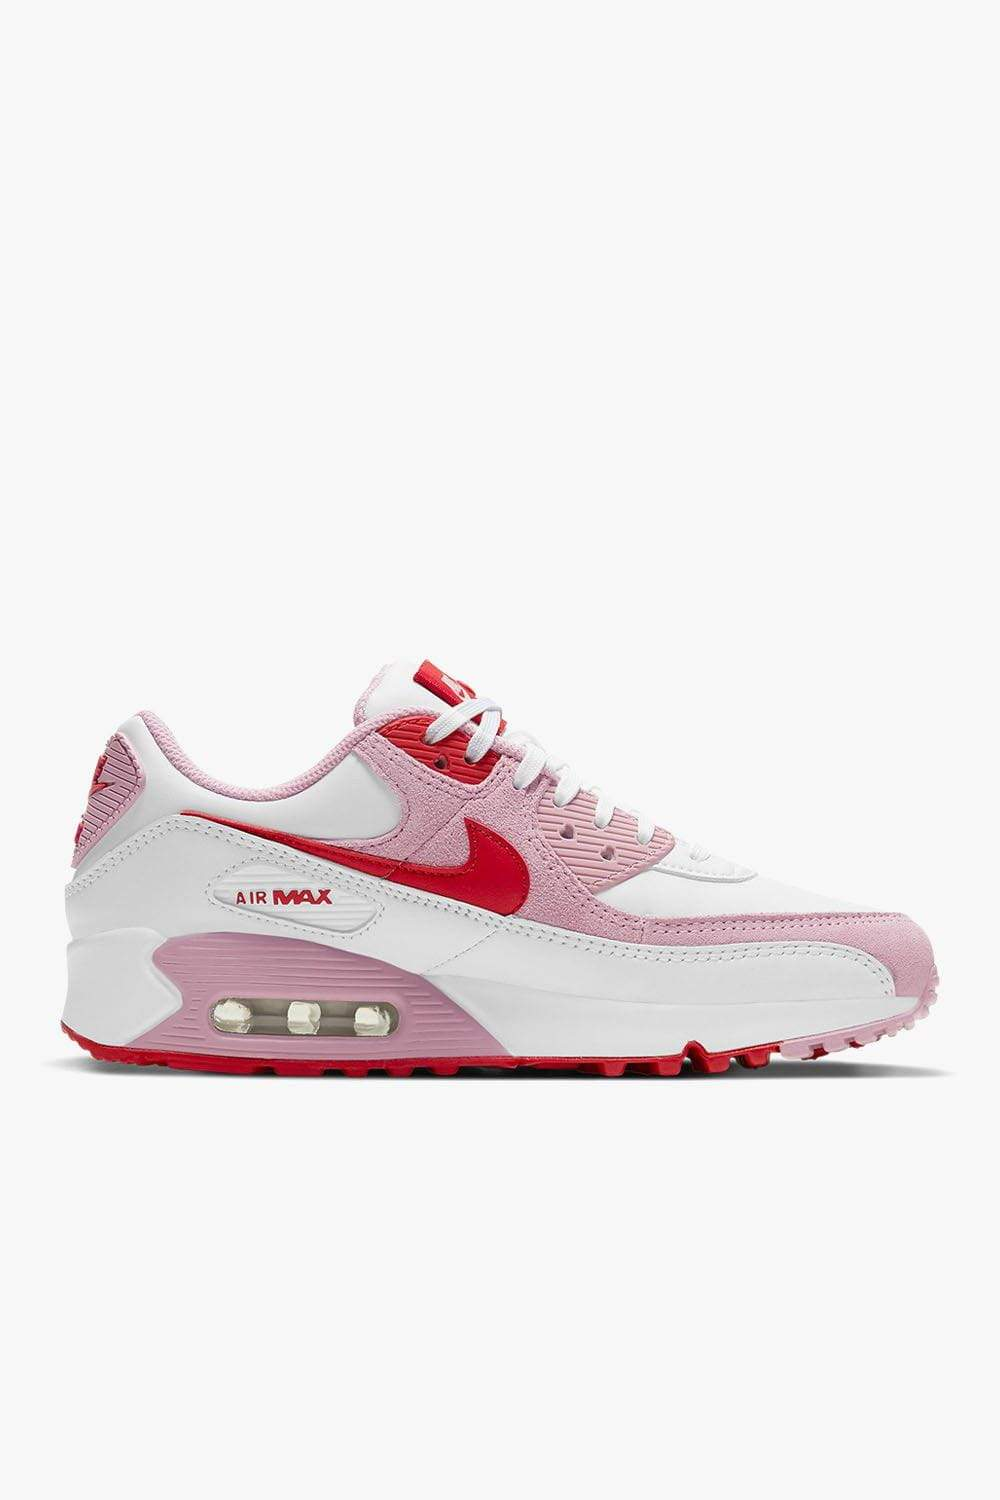 Nike Footwear Air Max 90 WMNS Valentine's Day